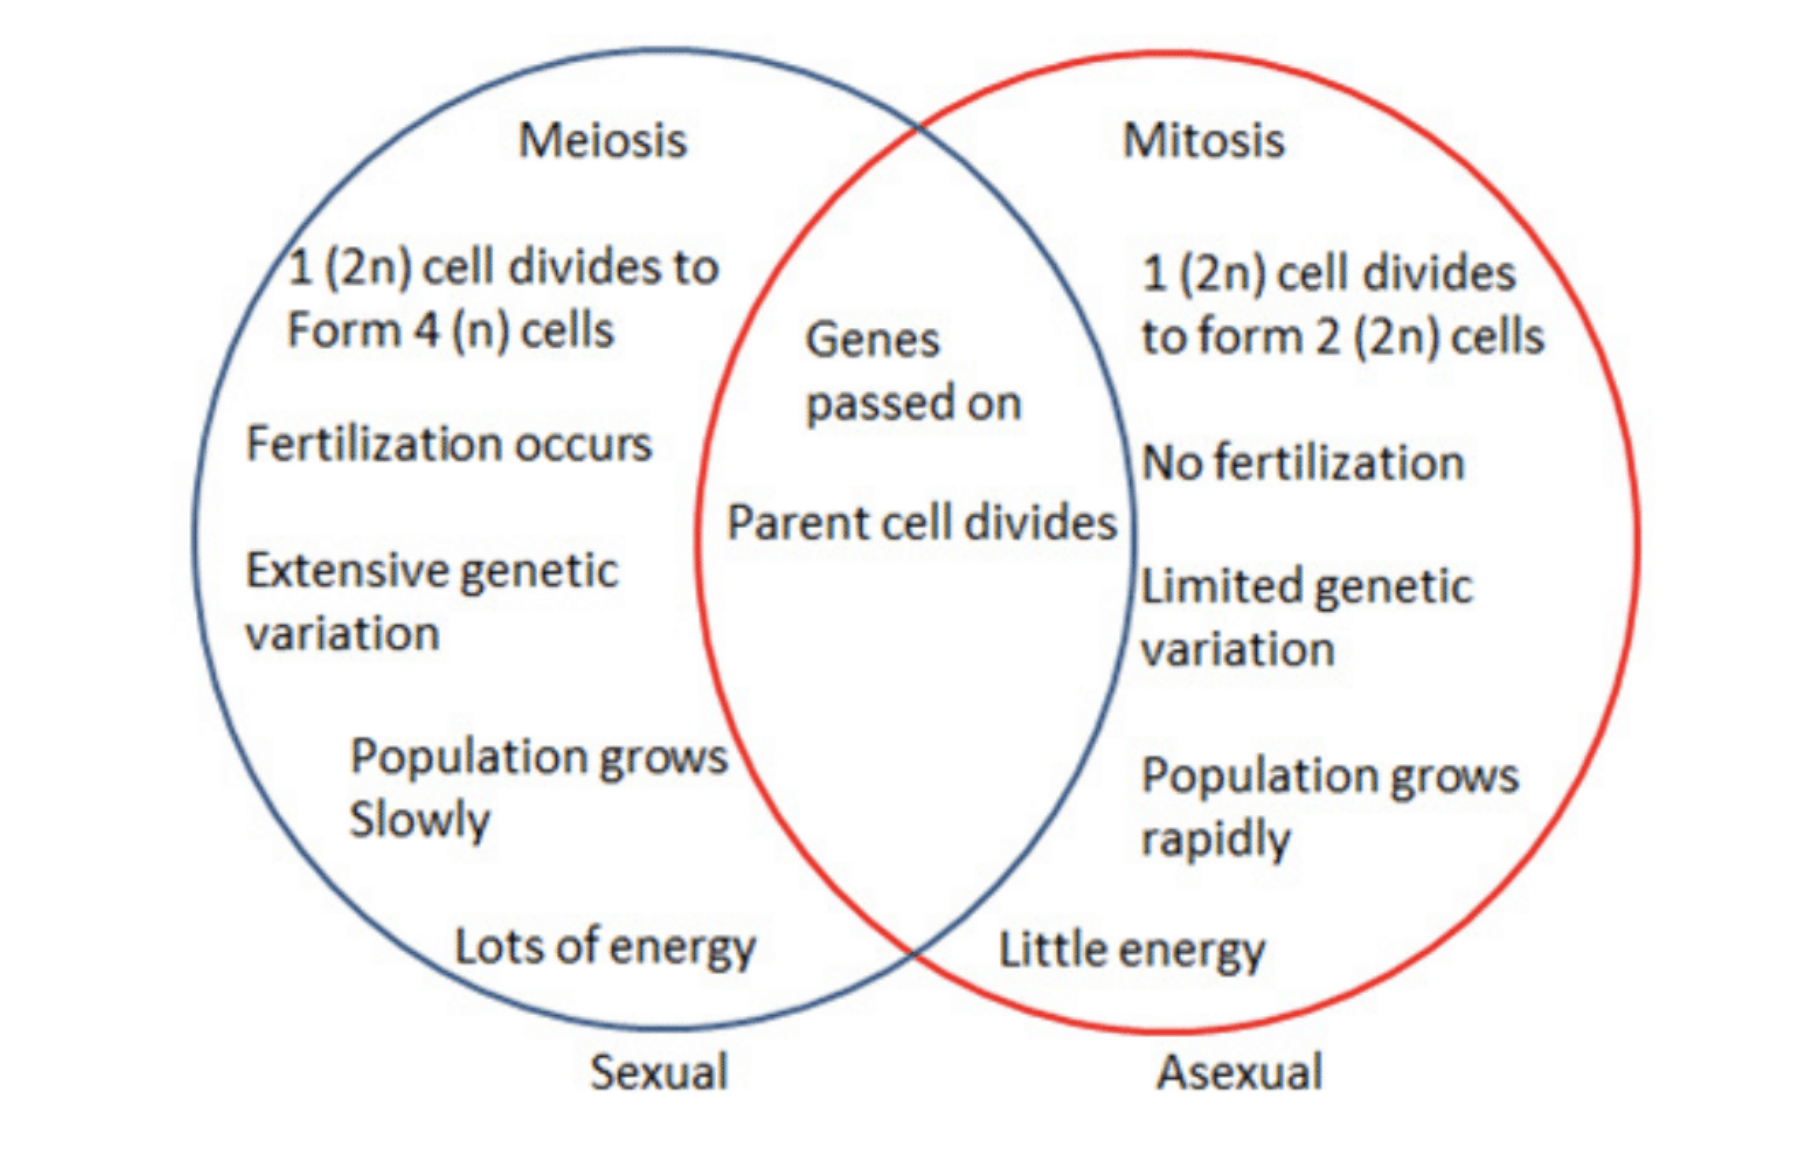 Mitosis Meiosis Venn Diagram Difference Between Sexual And Asexual Reproduction Difference Between